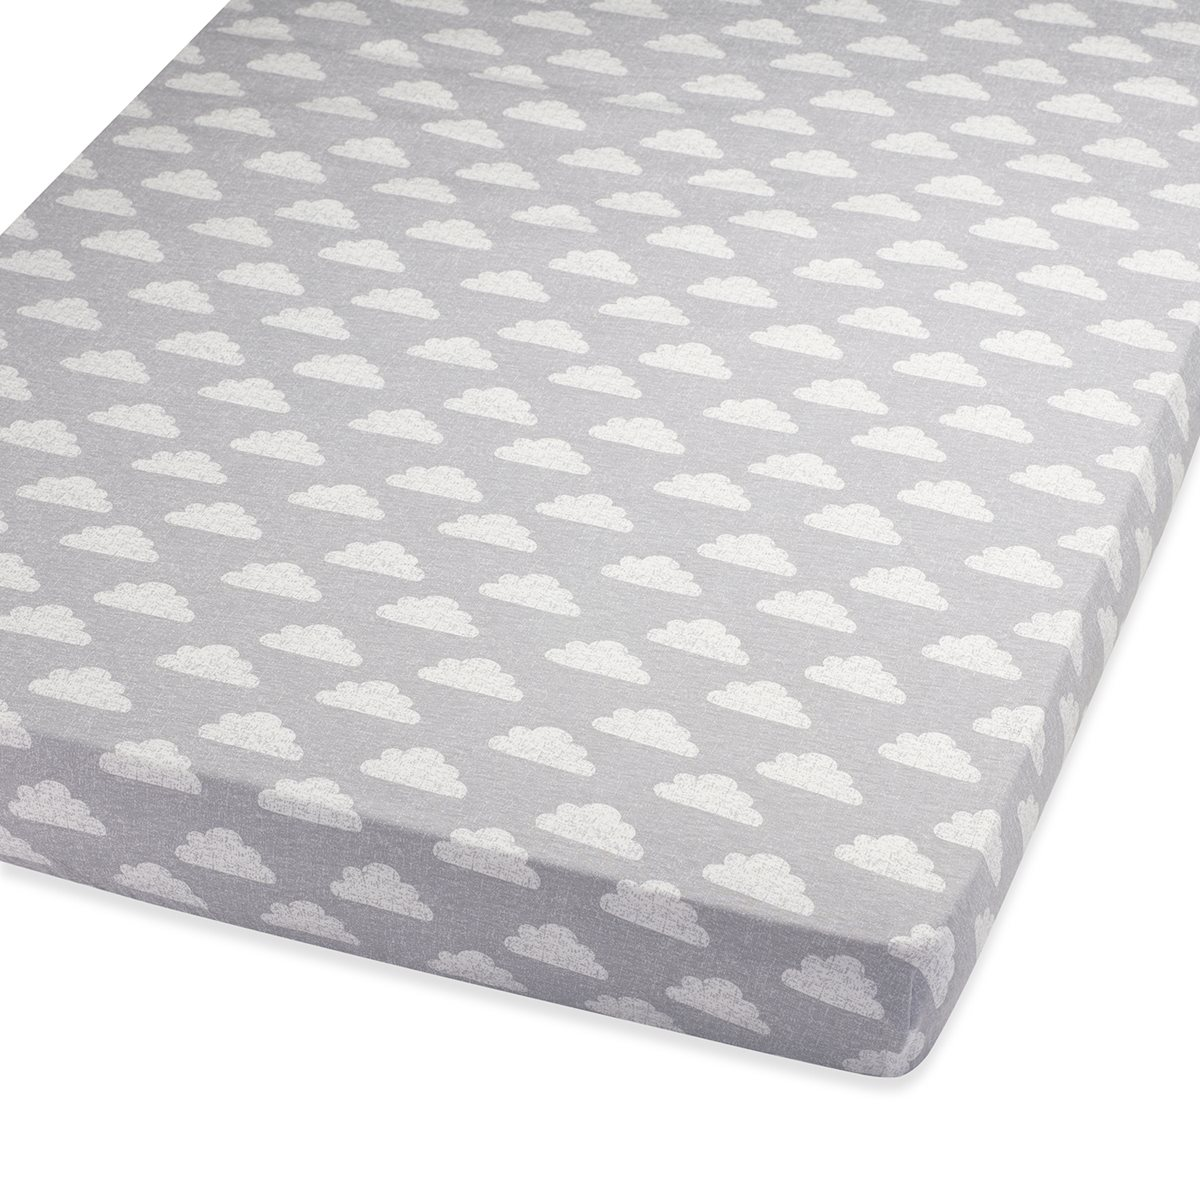 Good Cot U0026 Cot Bed Fitted Sheet In Cloud Nine | Snuz | Snüz